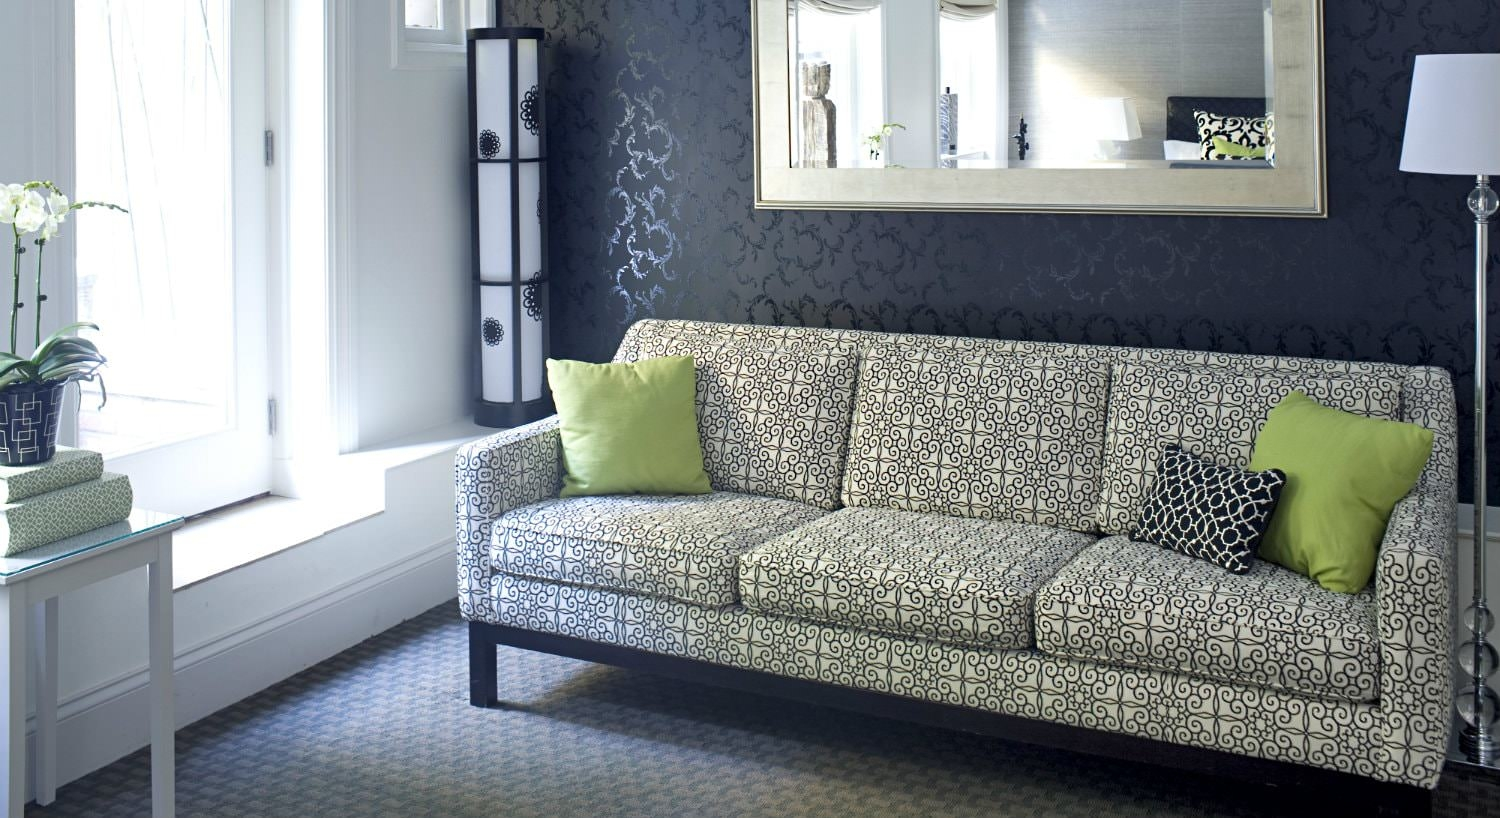 Black and white sofa with lime green pillows in front of an elegant black papered wall with hanging mirror